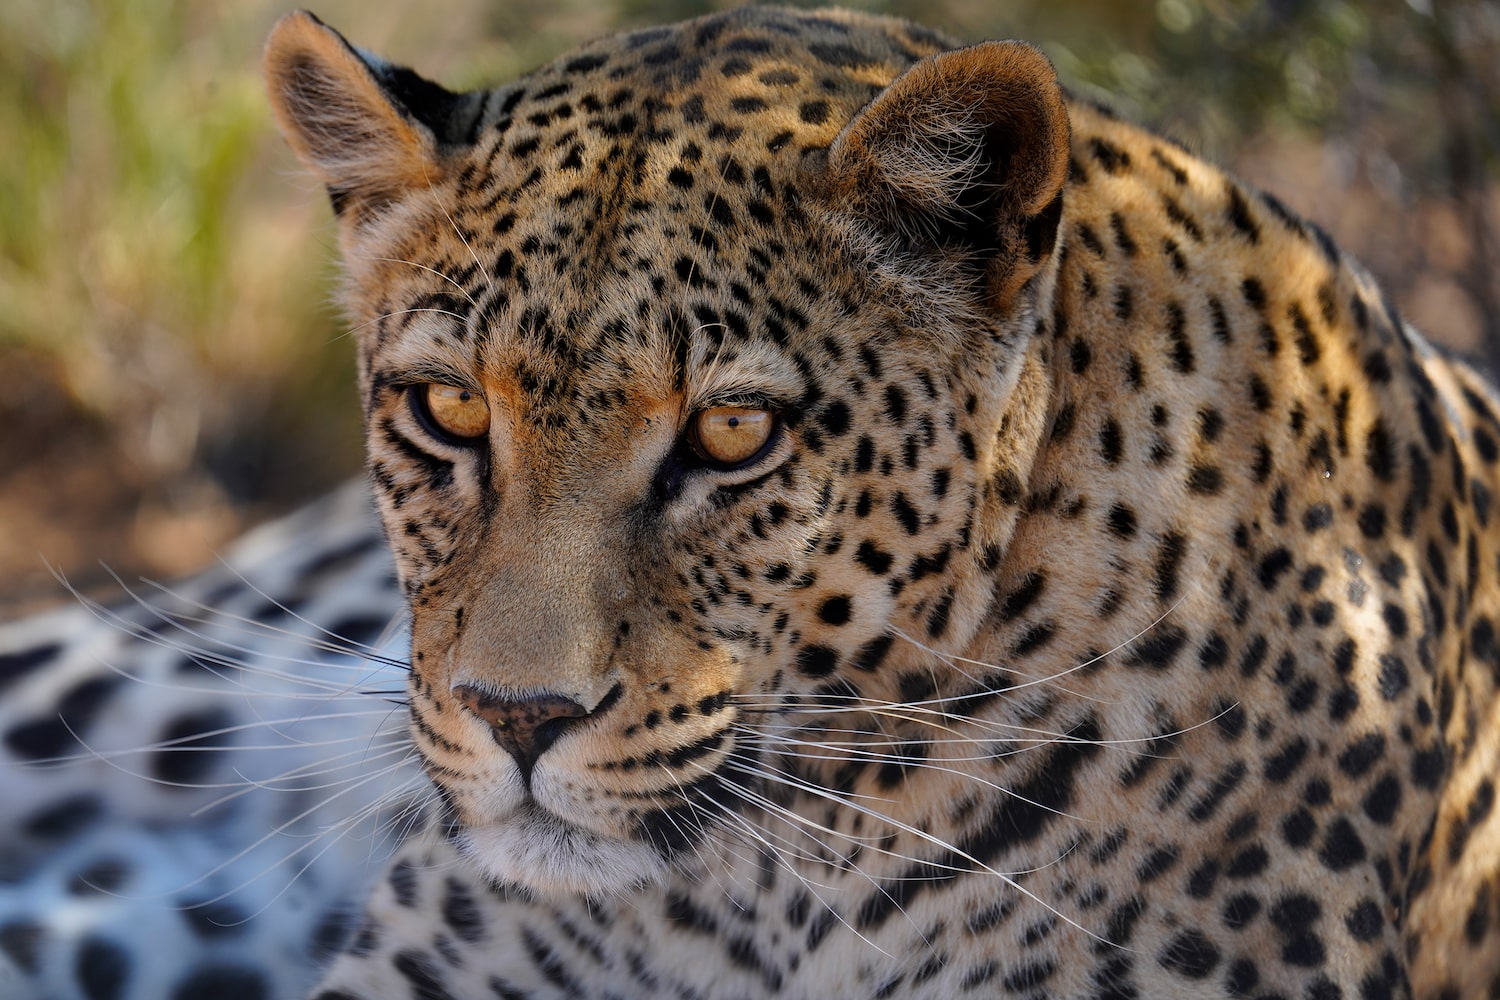 close-up-portrait-leopard-yellow-eyes-alpha-7RIV